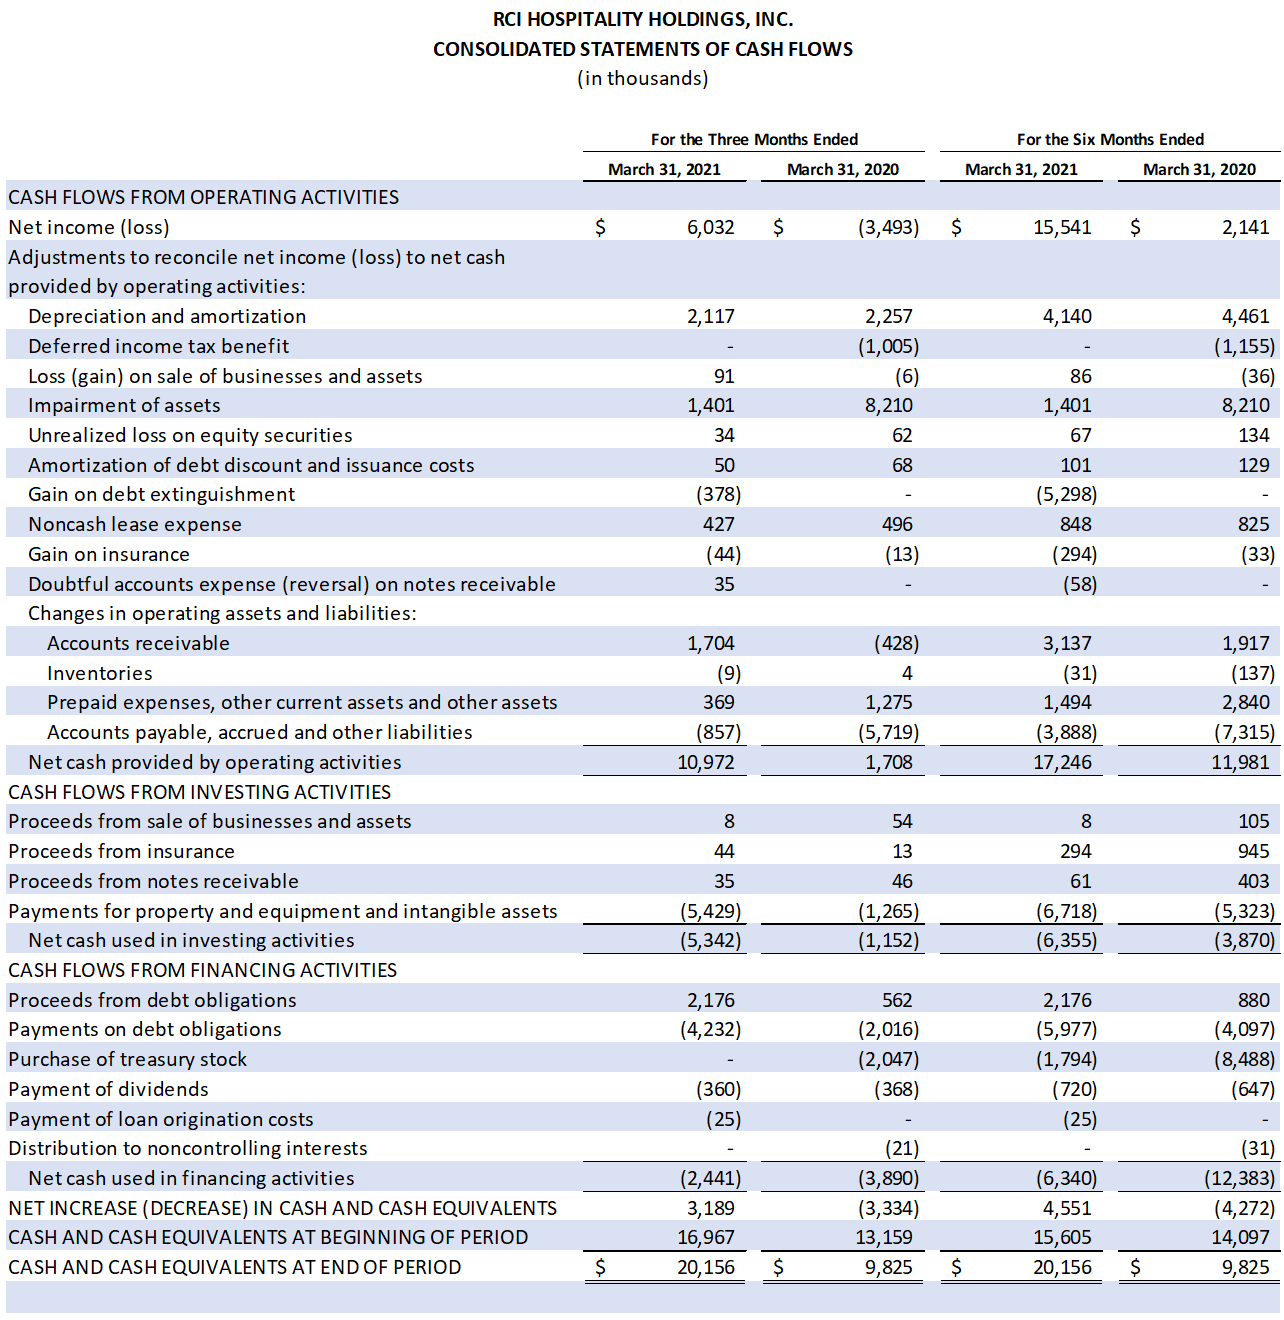 Table: Consolidated Statements of Cash Flows